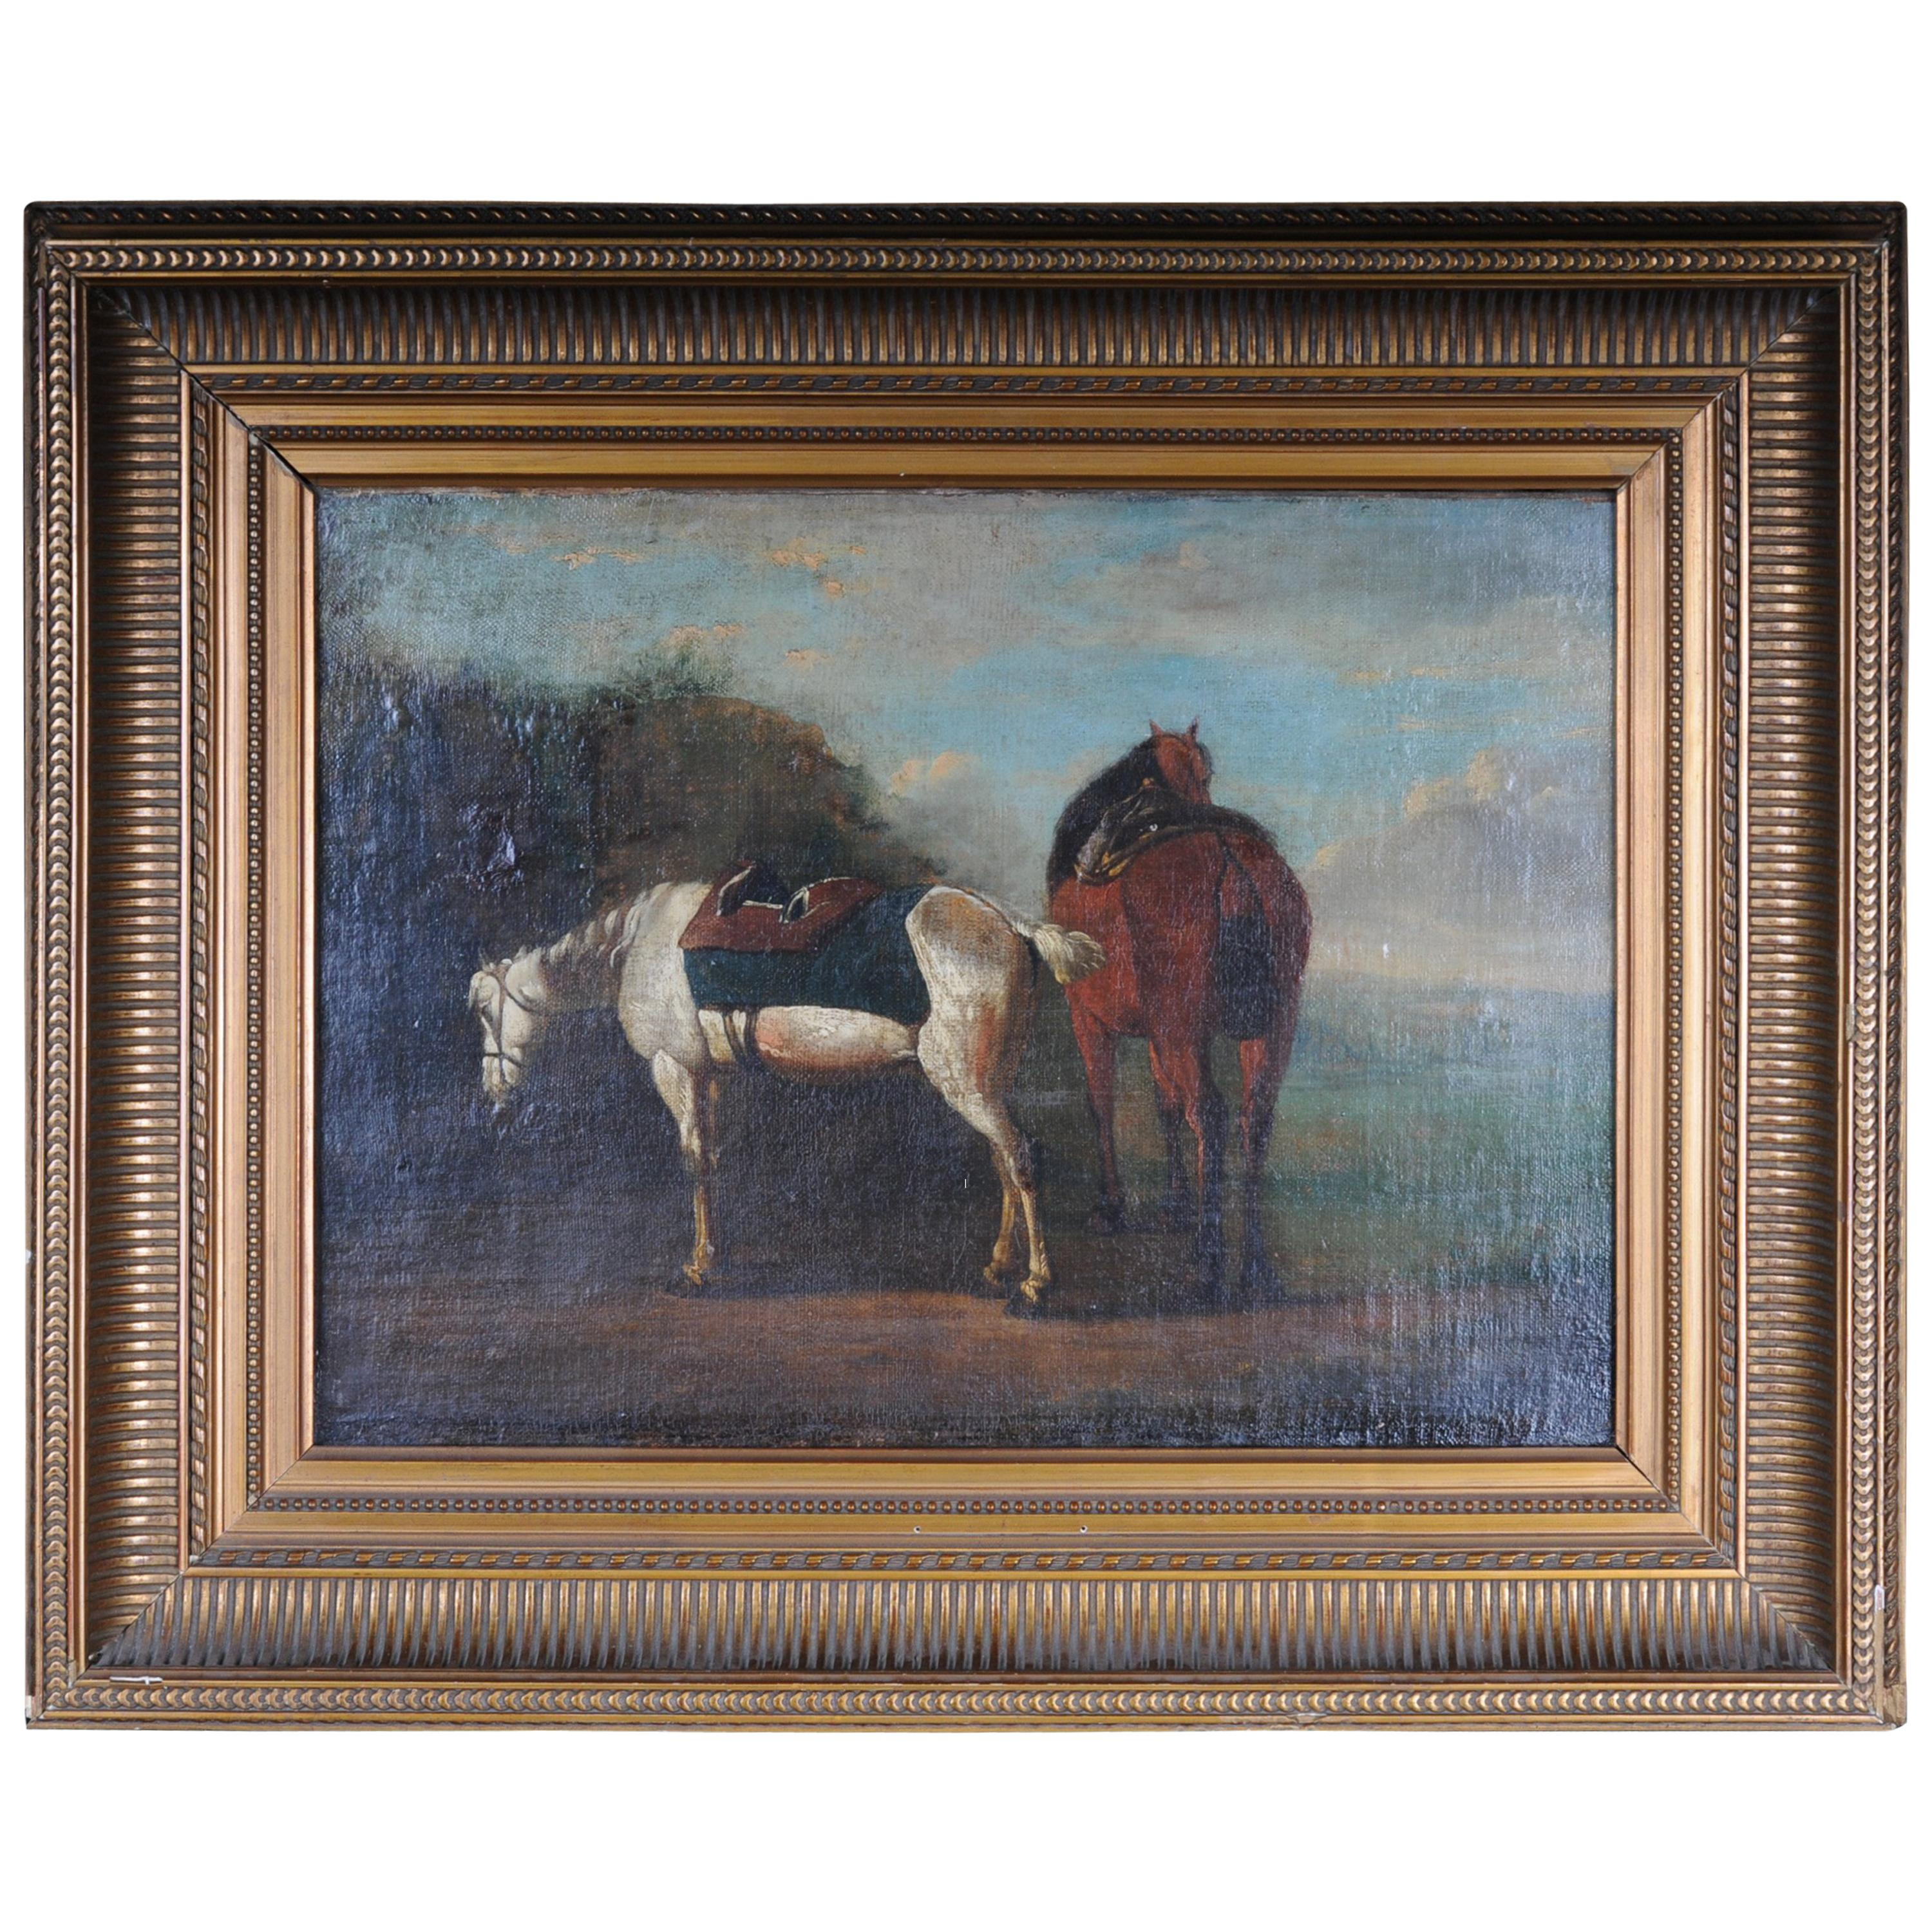 Old Oil Painting Illustration 2 Horses on the Landscape